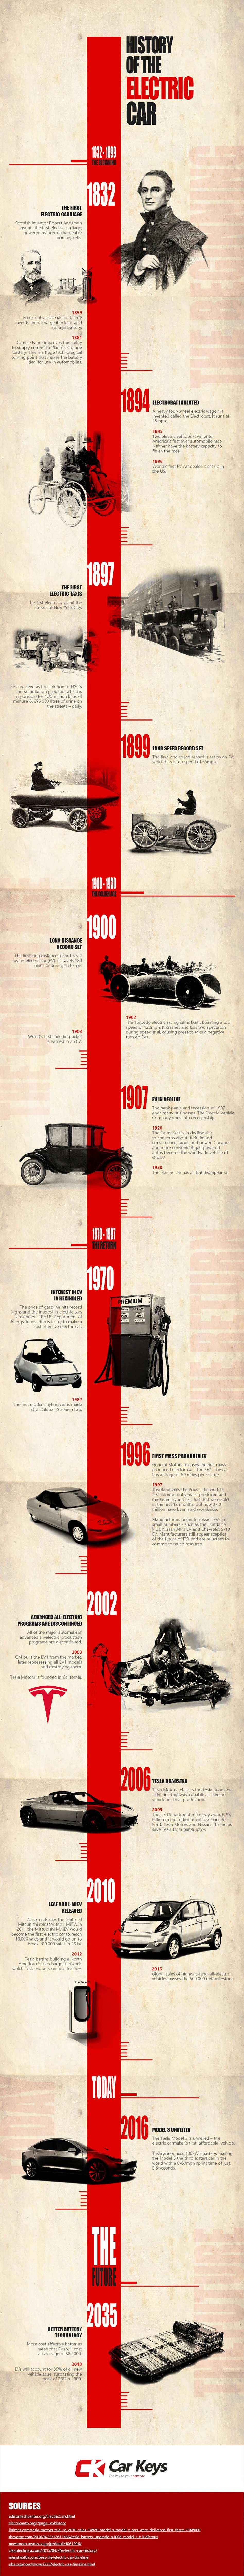 Pin By Kreacions Xxiv On Cars Pinterest Auto Electrico Coches